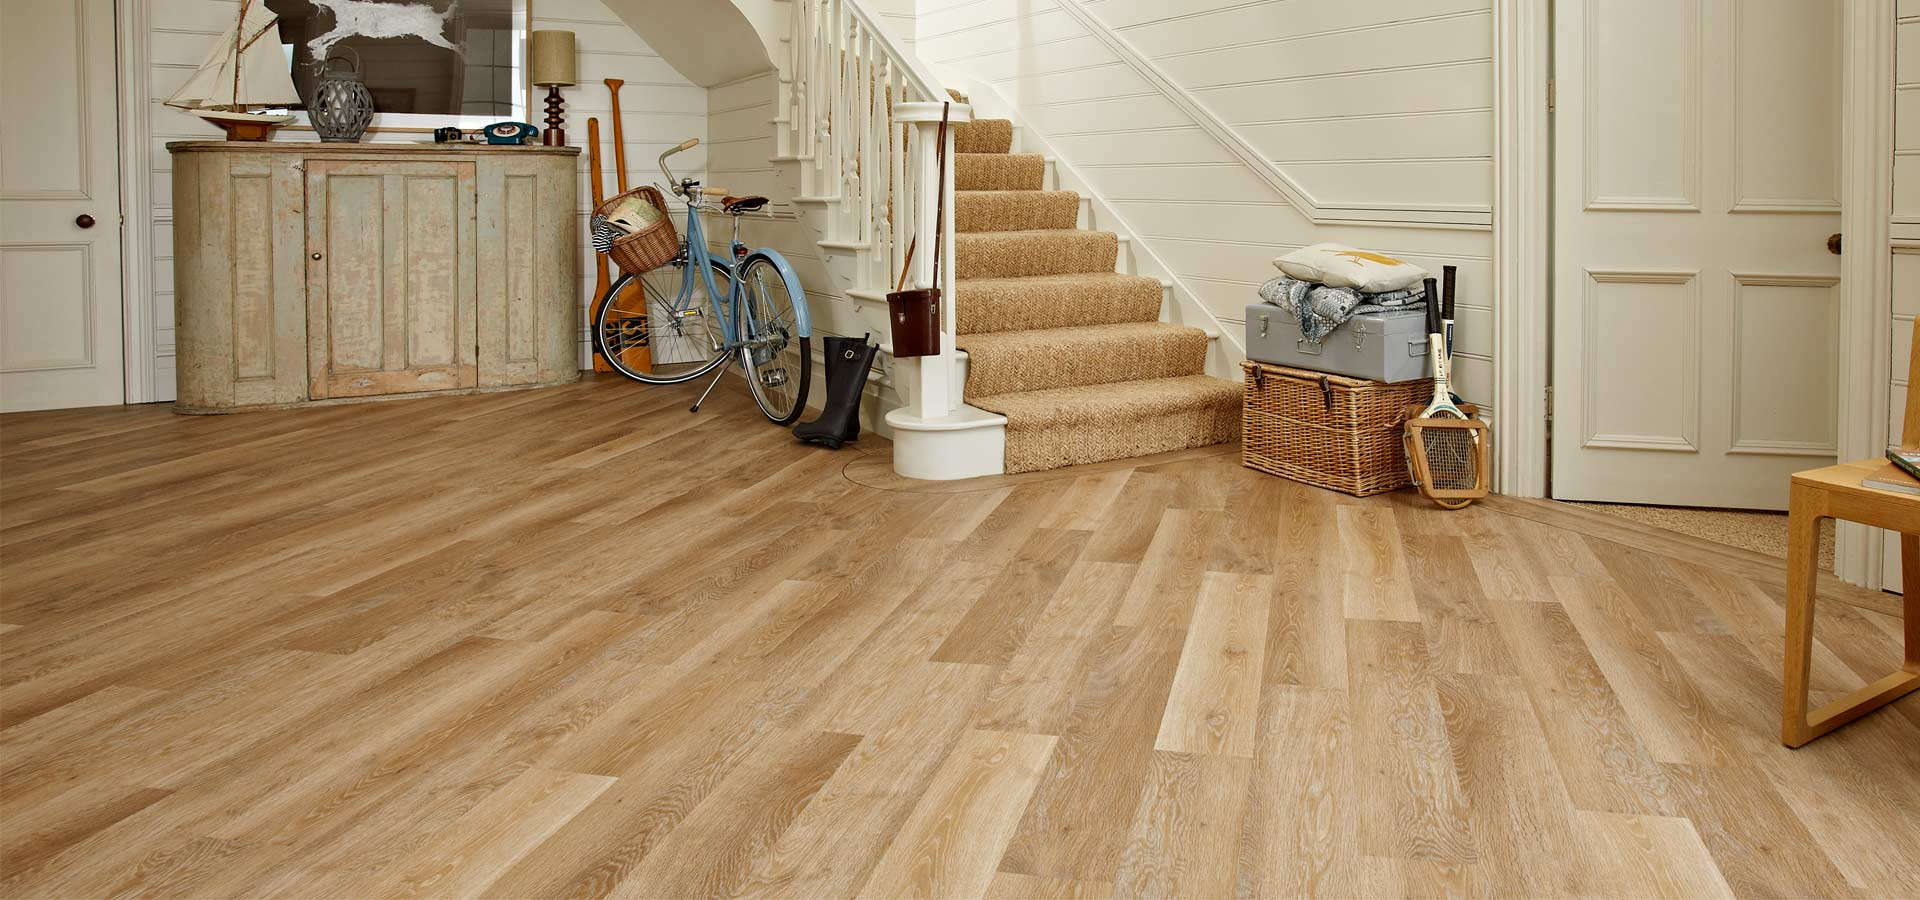 What To Consider When Laying Flooring in High Traffic